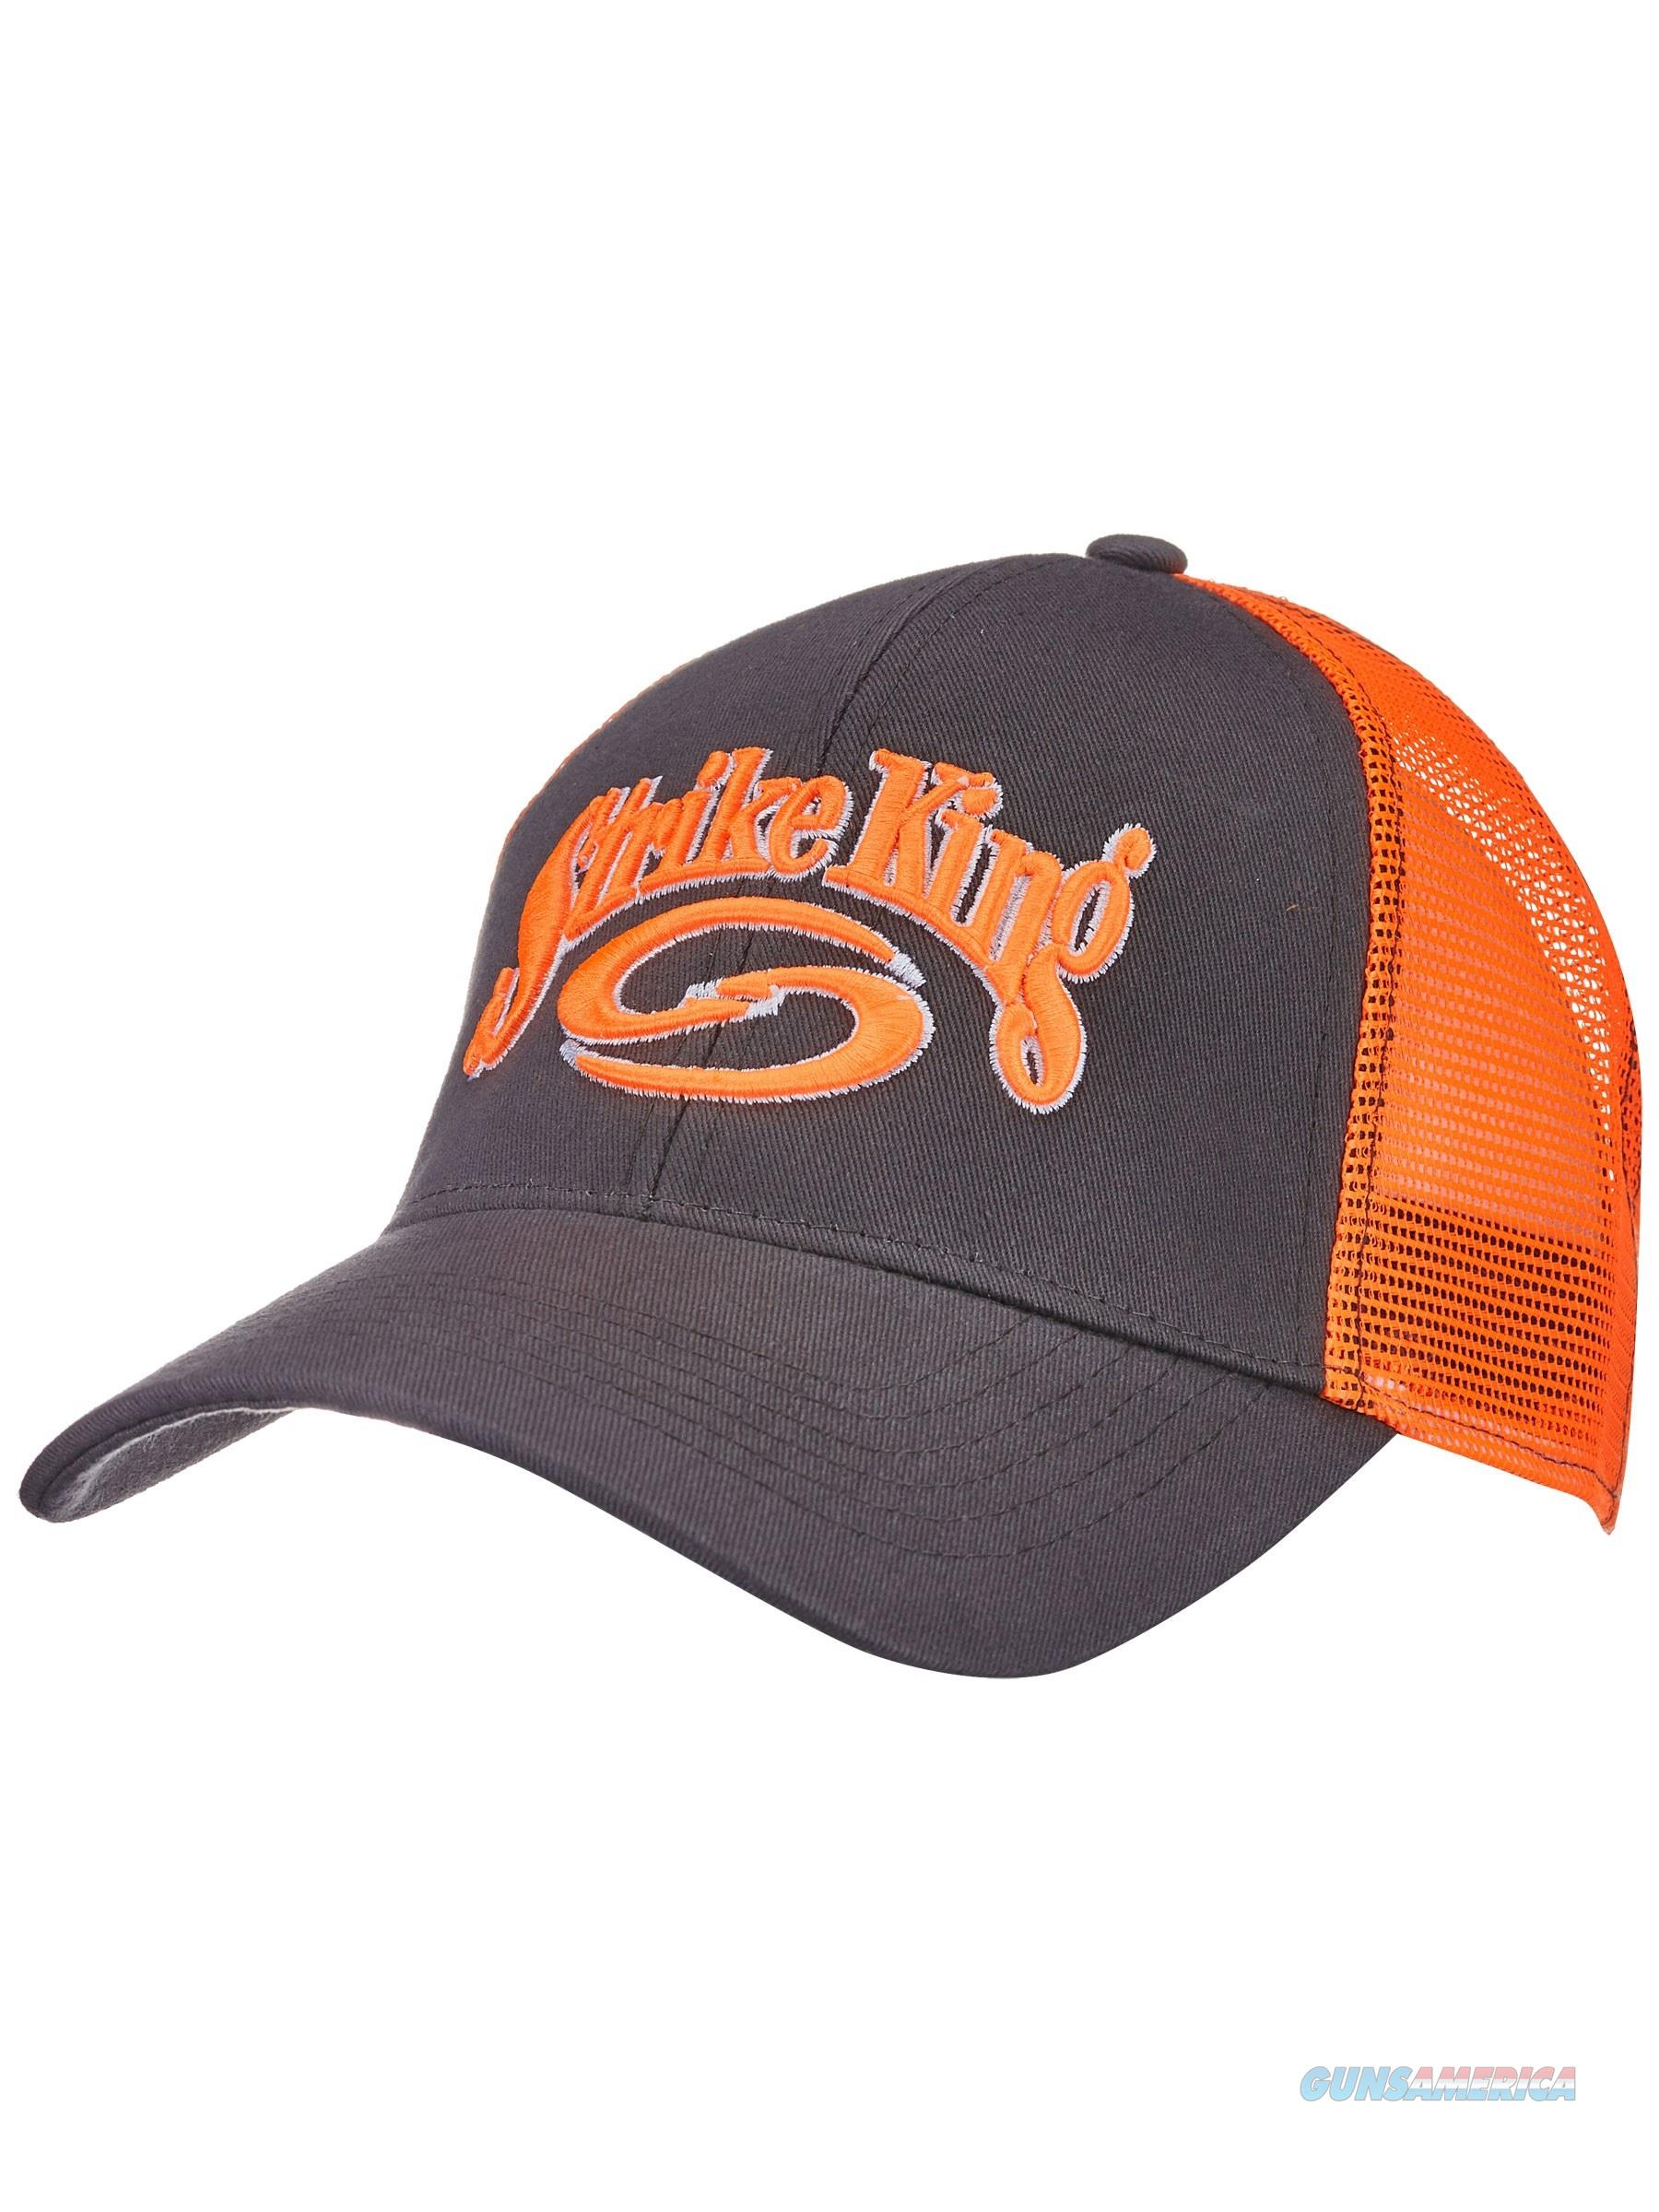 Strike King Trucker Cap Charcoal Neon  Non-Guns > Hunting Clothing and Equipment > Clothing > Hats